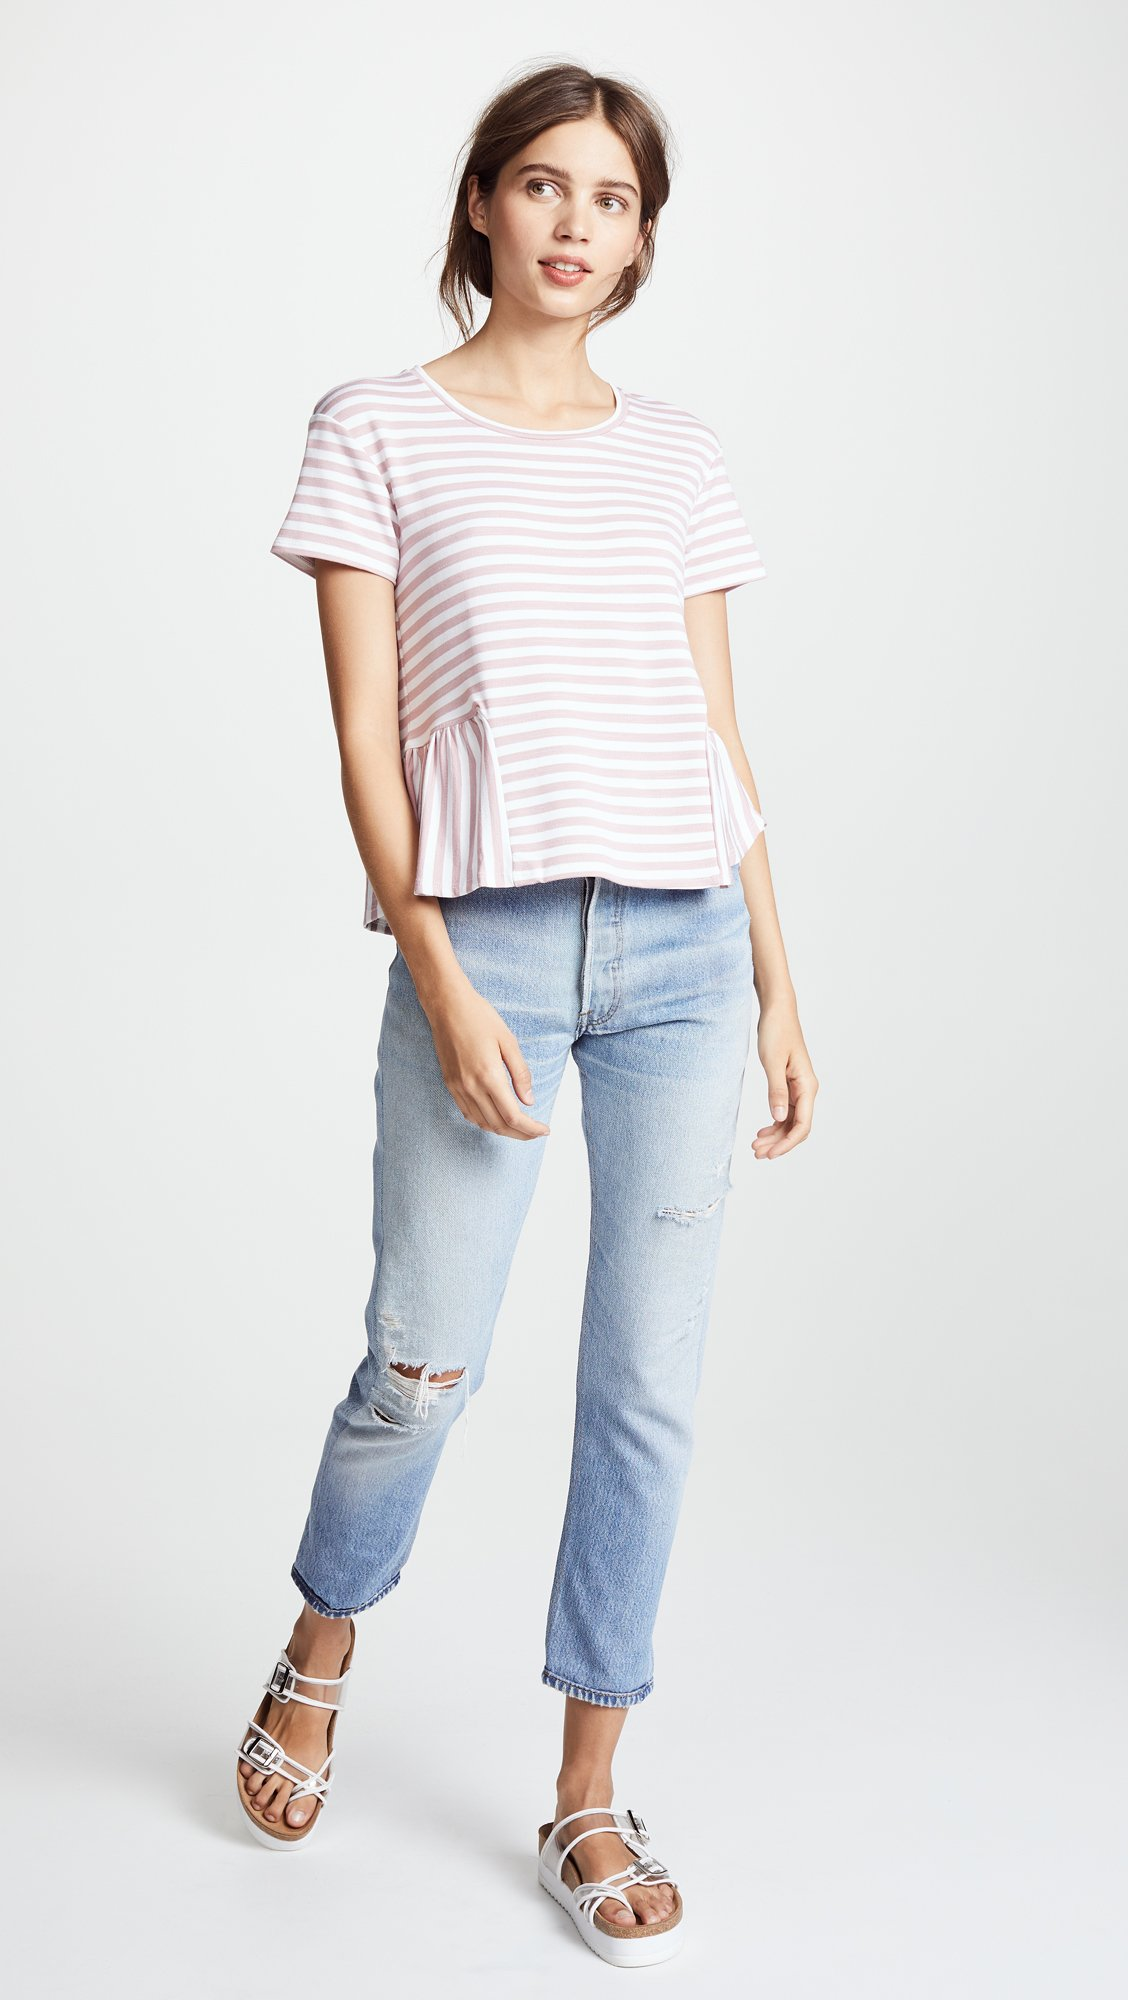 Three Dots Women's Cape Cod Stripe Loose Short Top, Rose/White, Extra Small by Three Dots (Image #5)